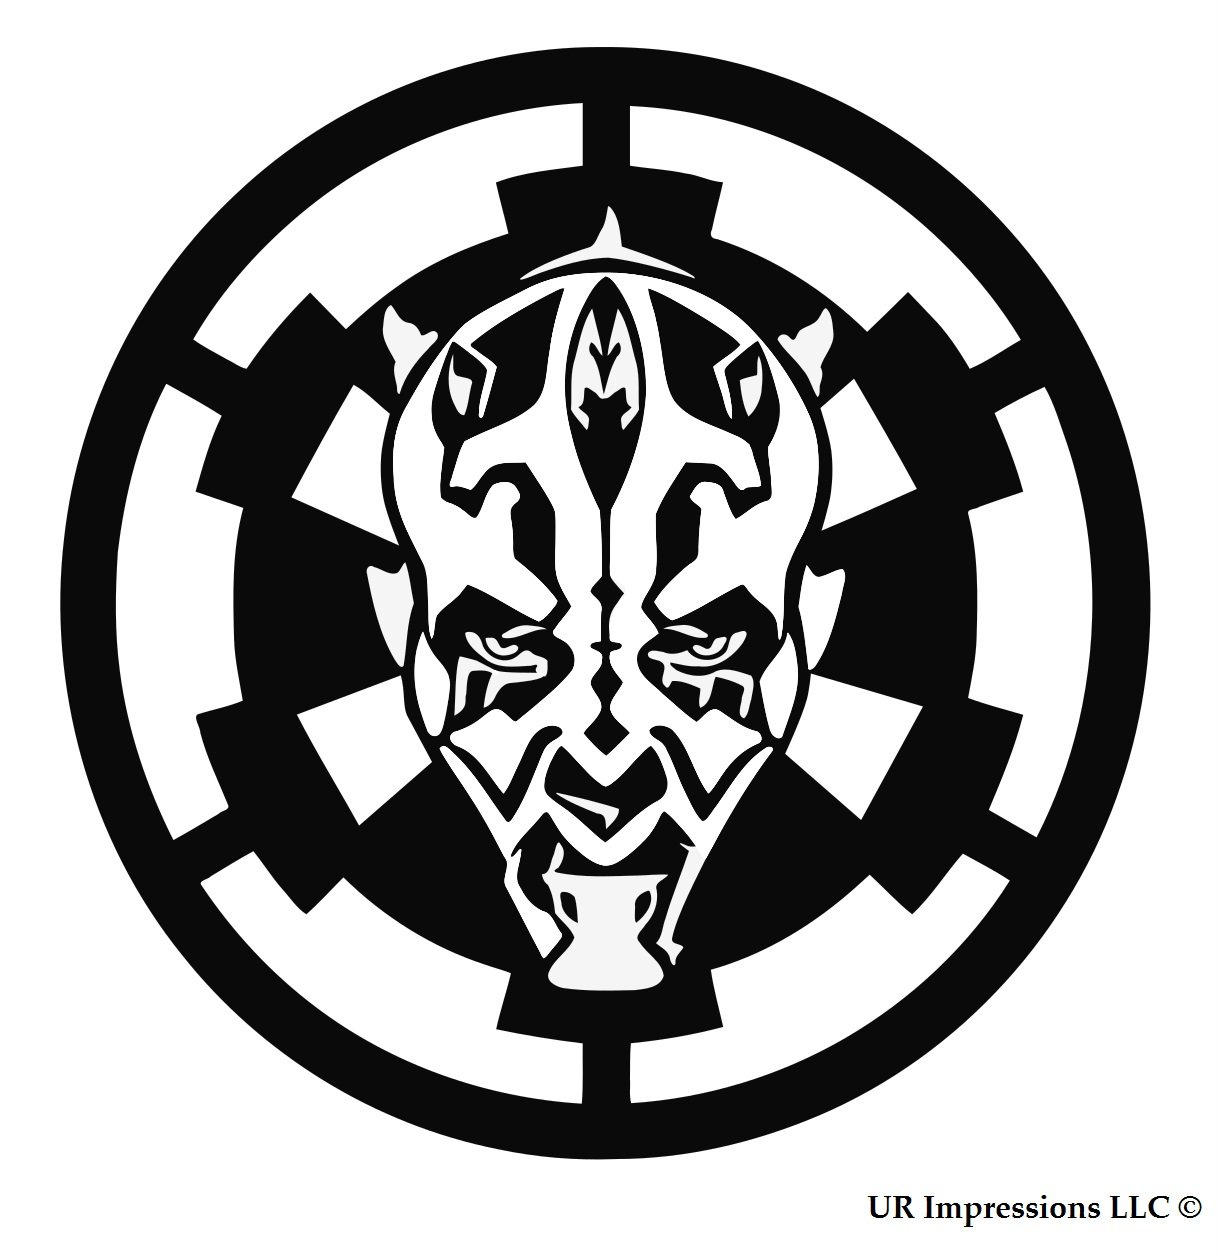 BLK Darth Maul over Galactic Empire Insignia Star Wars Inspiredデカールビニールsticker|cars Trucks壁laptop|black|5.5 in|uri463   B076HVKHZD